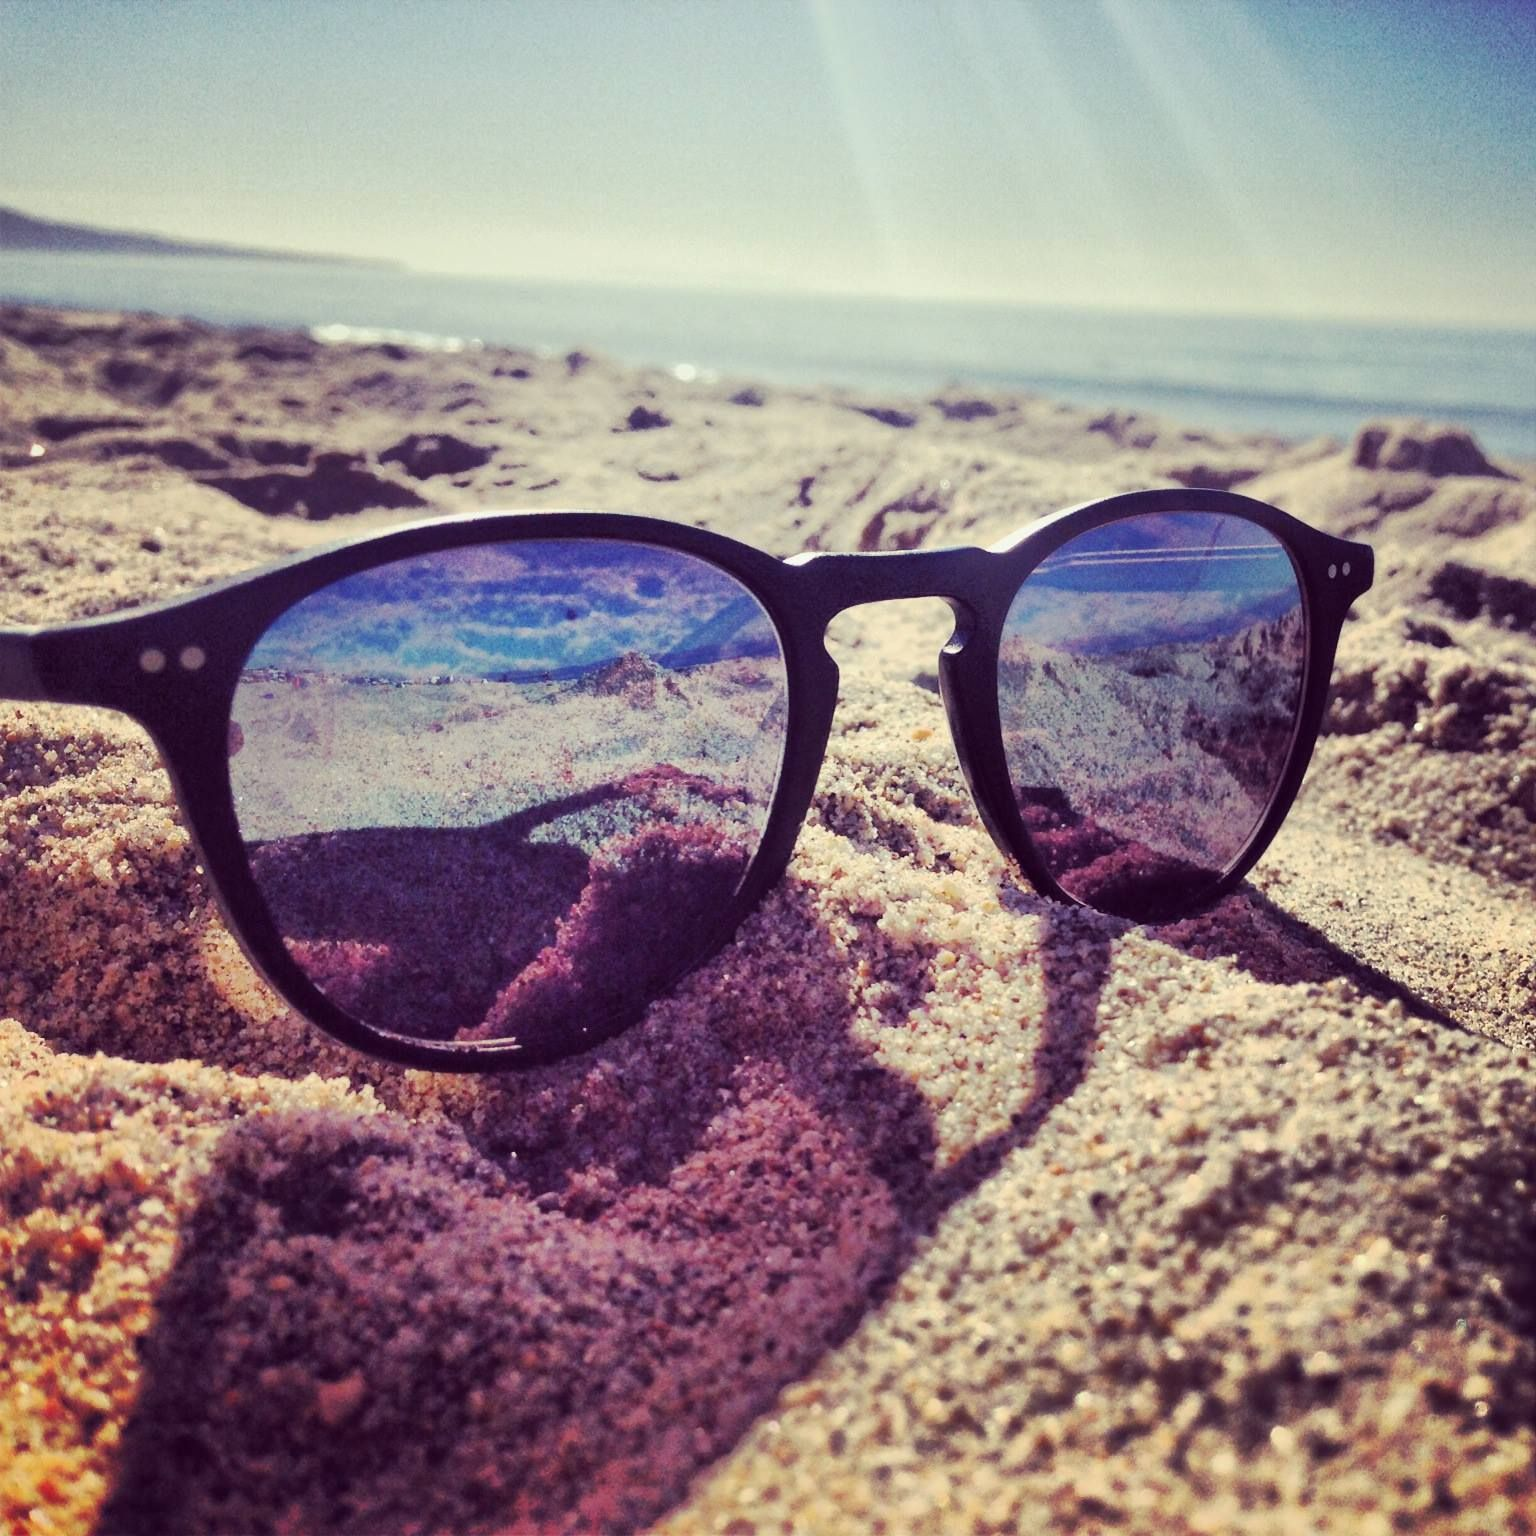 8530a92f74c A GLCO Winter beach day... - Custom Hampton frames with Artic Lens -  www.vingerhoets-optics.be